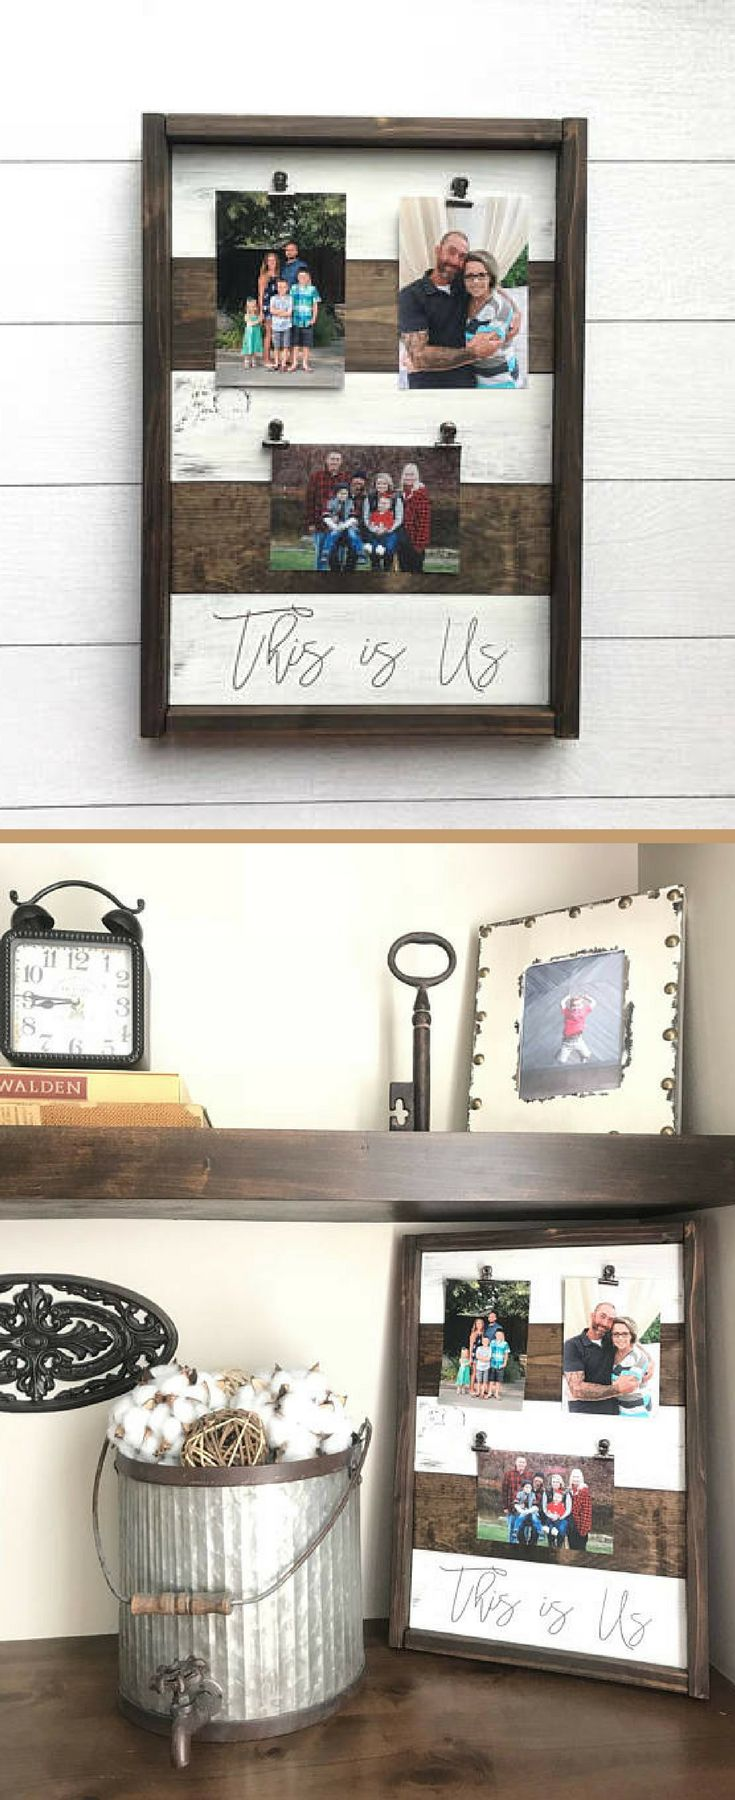 This is Us Picture holder wood framed sign. Perfect for showing off family photos!rustic picture frame. Photo holder. Photo frame. Wood sign. Wreath holder. Rustic Farmhouse decor. Farmhouse Picture Holder, Rustic decor, Rustic wall decor, living room decor #ad